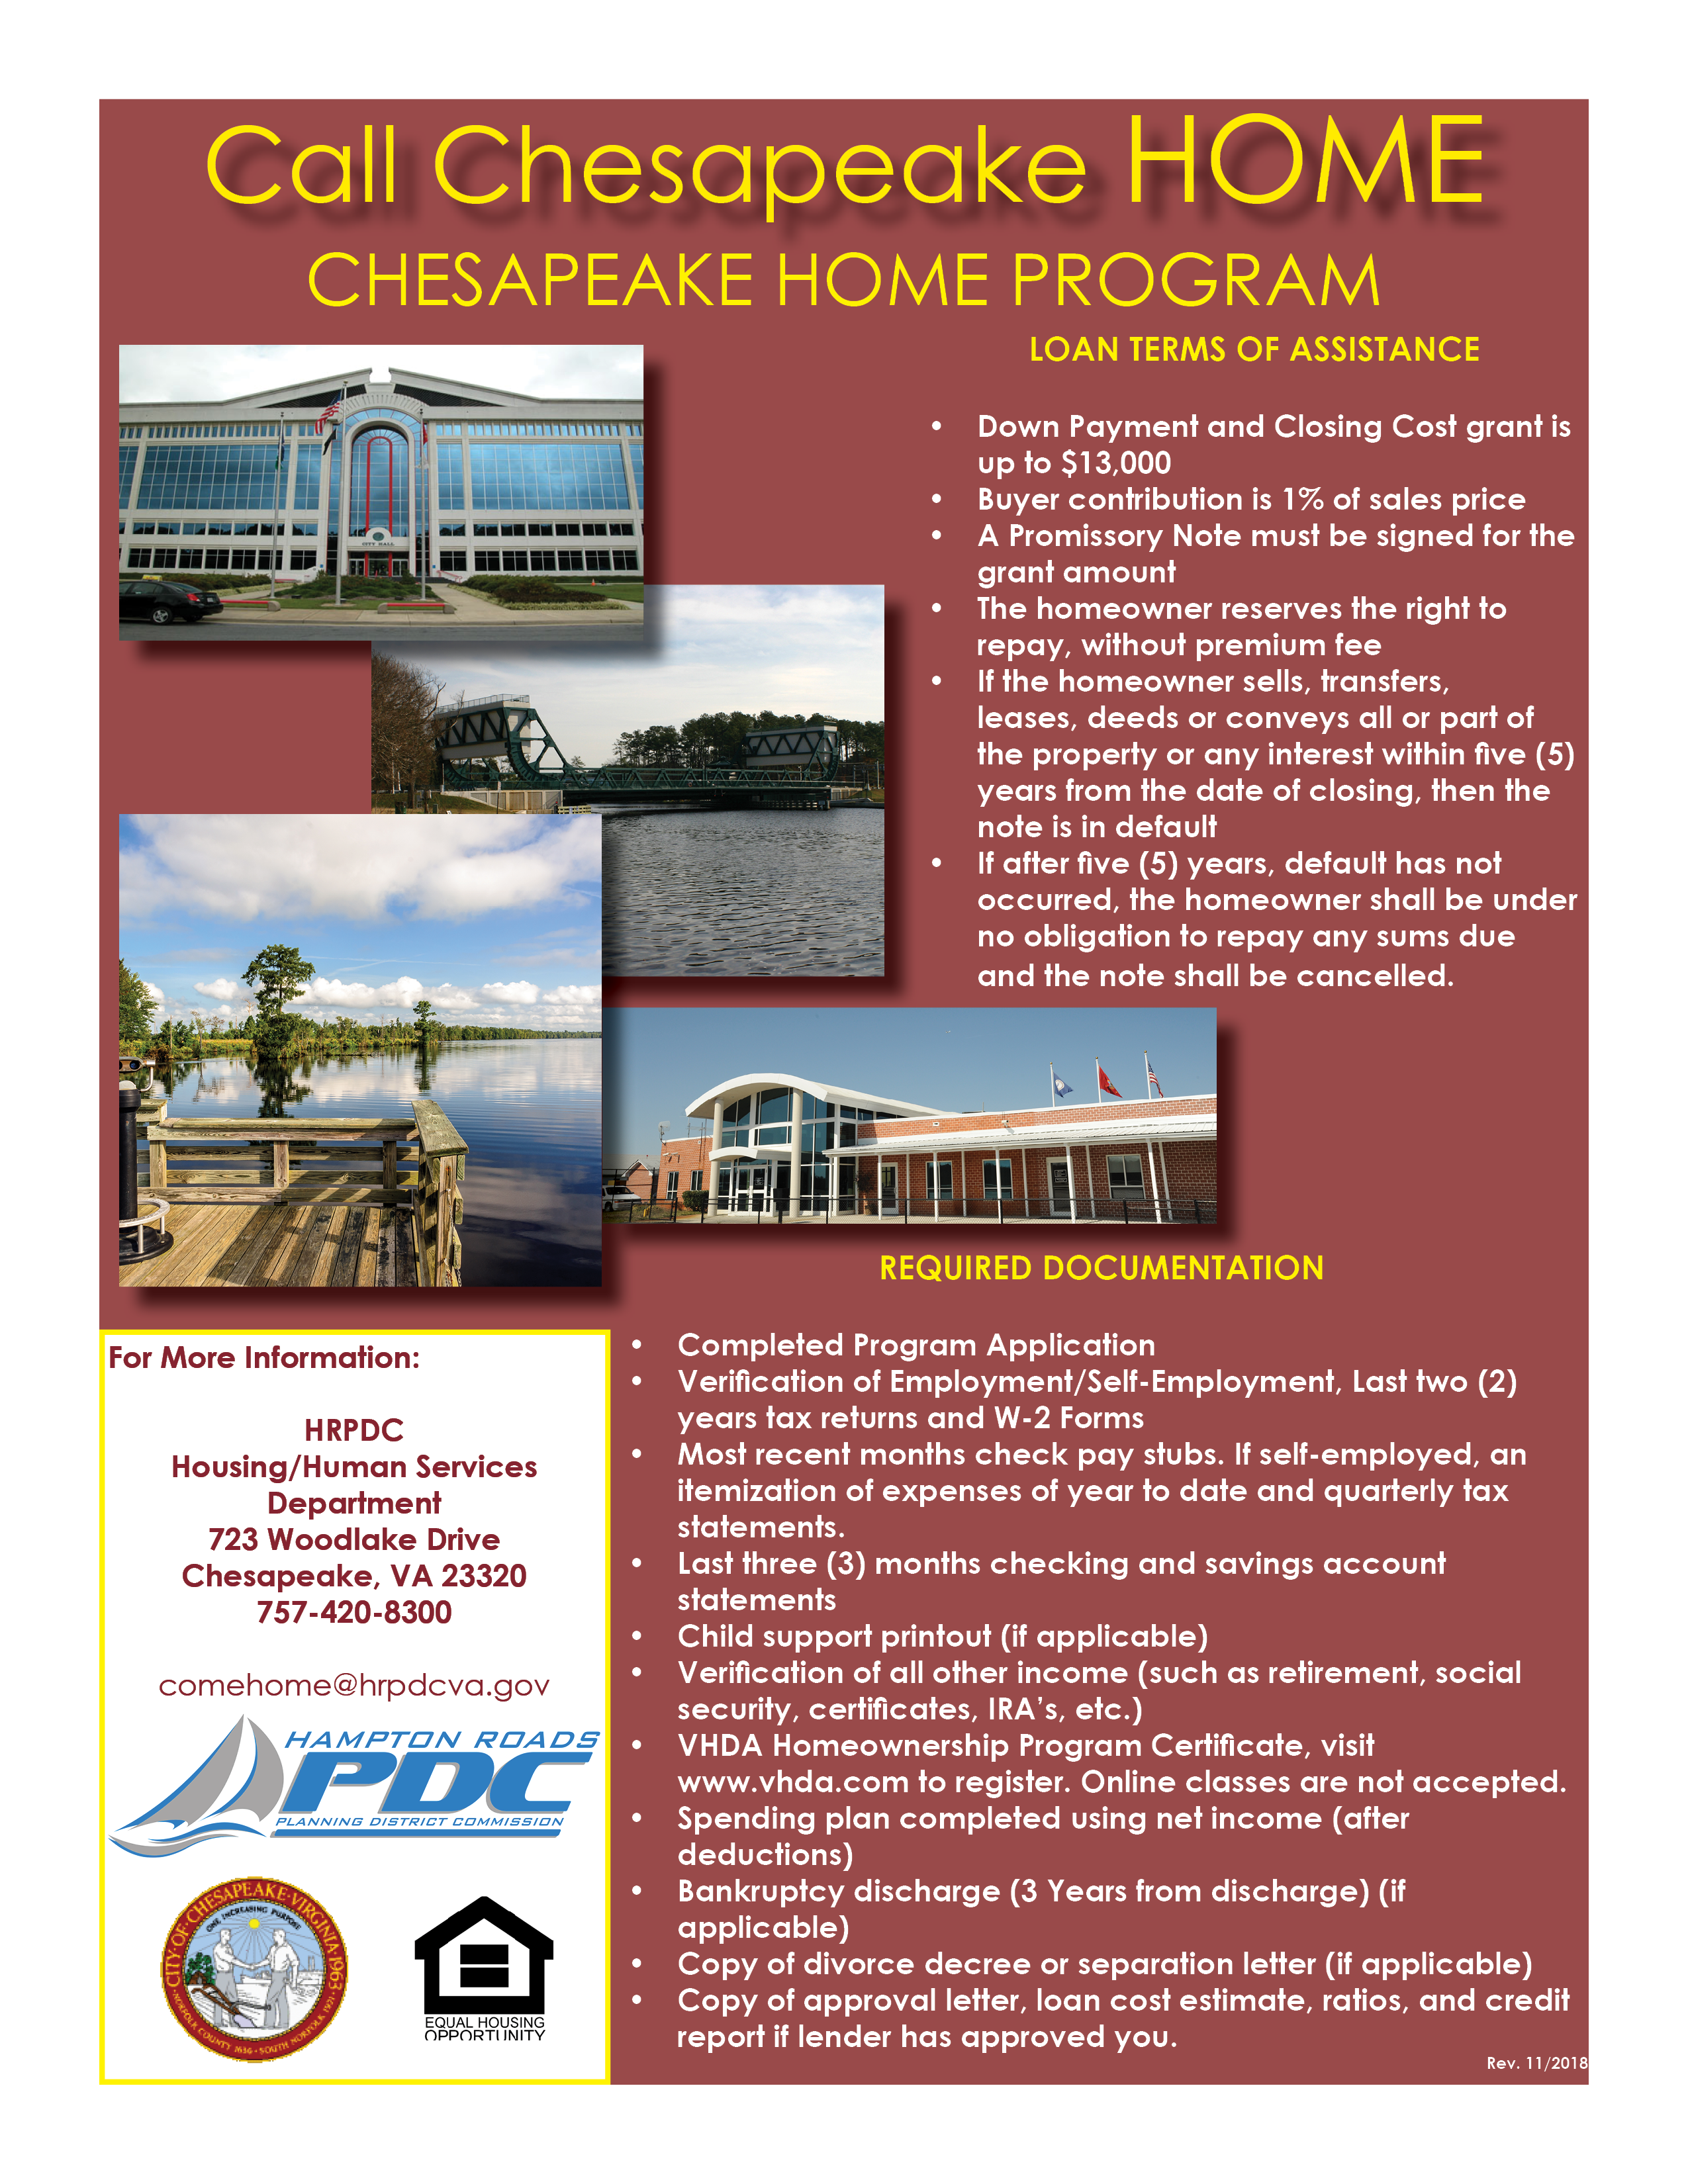 Image of Call Chesapeake Home Flyer